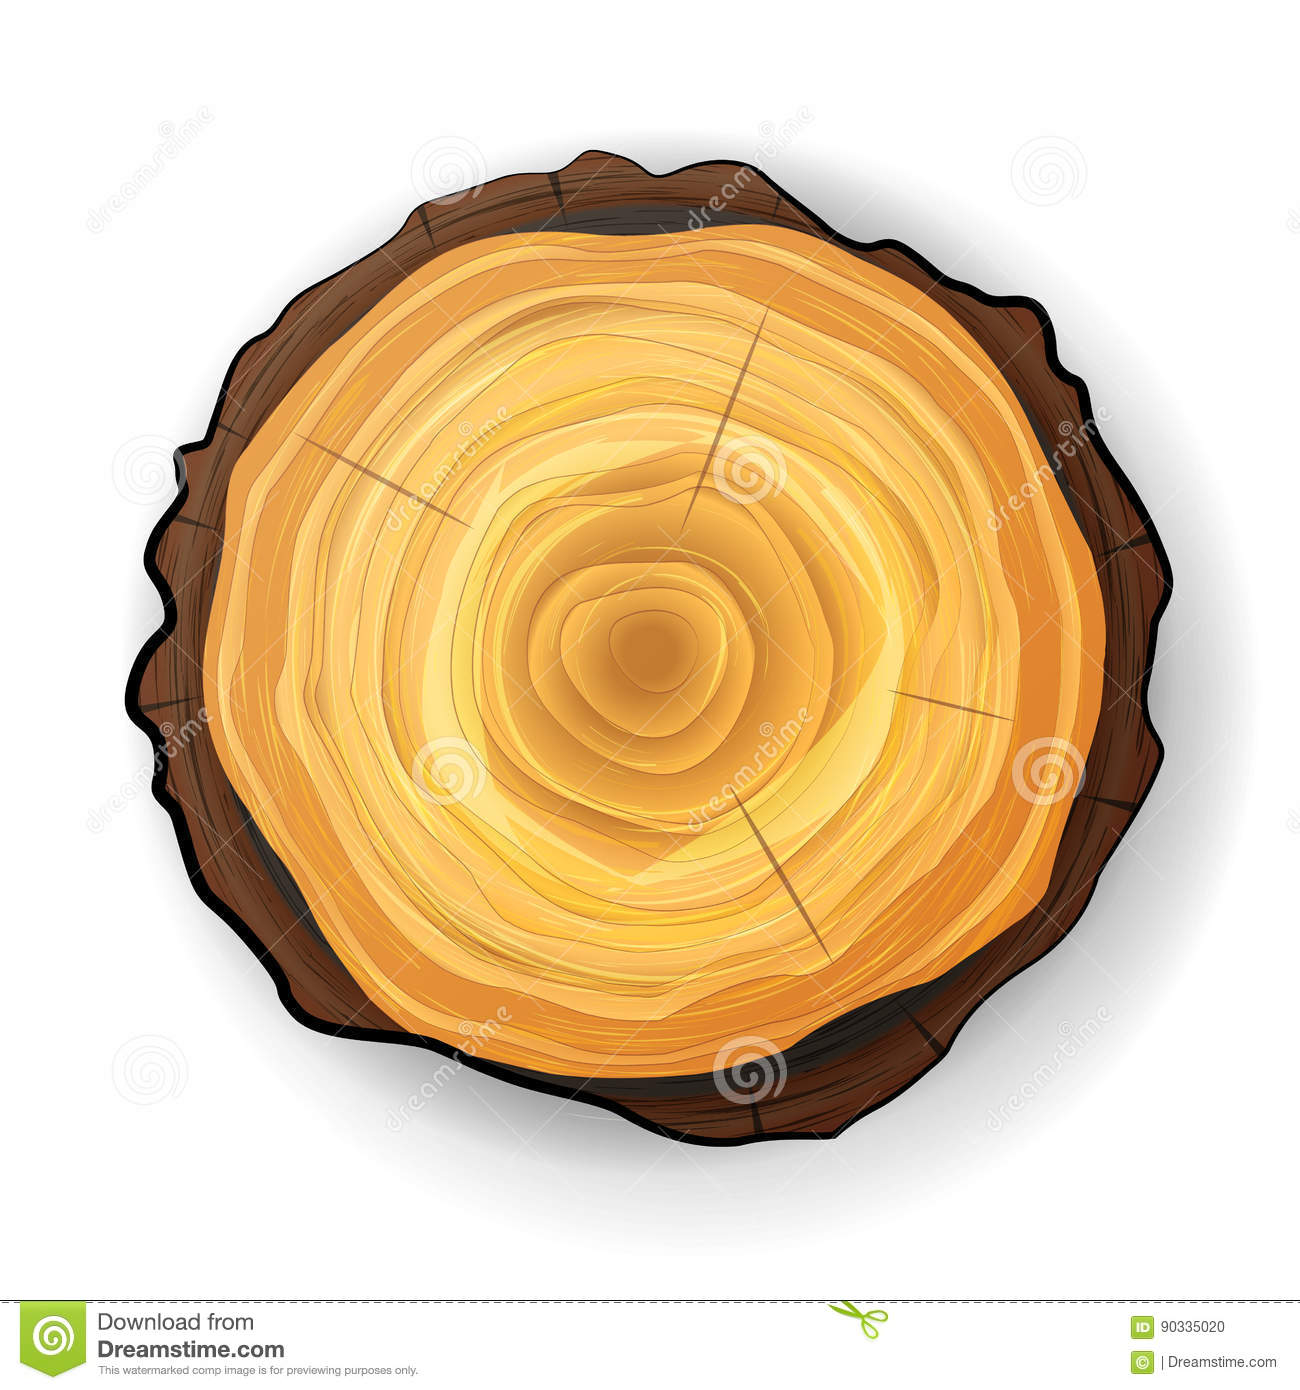 Cross Section Tree Wooden Stump Vector. Tree Round Cut With Annual Rings